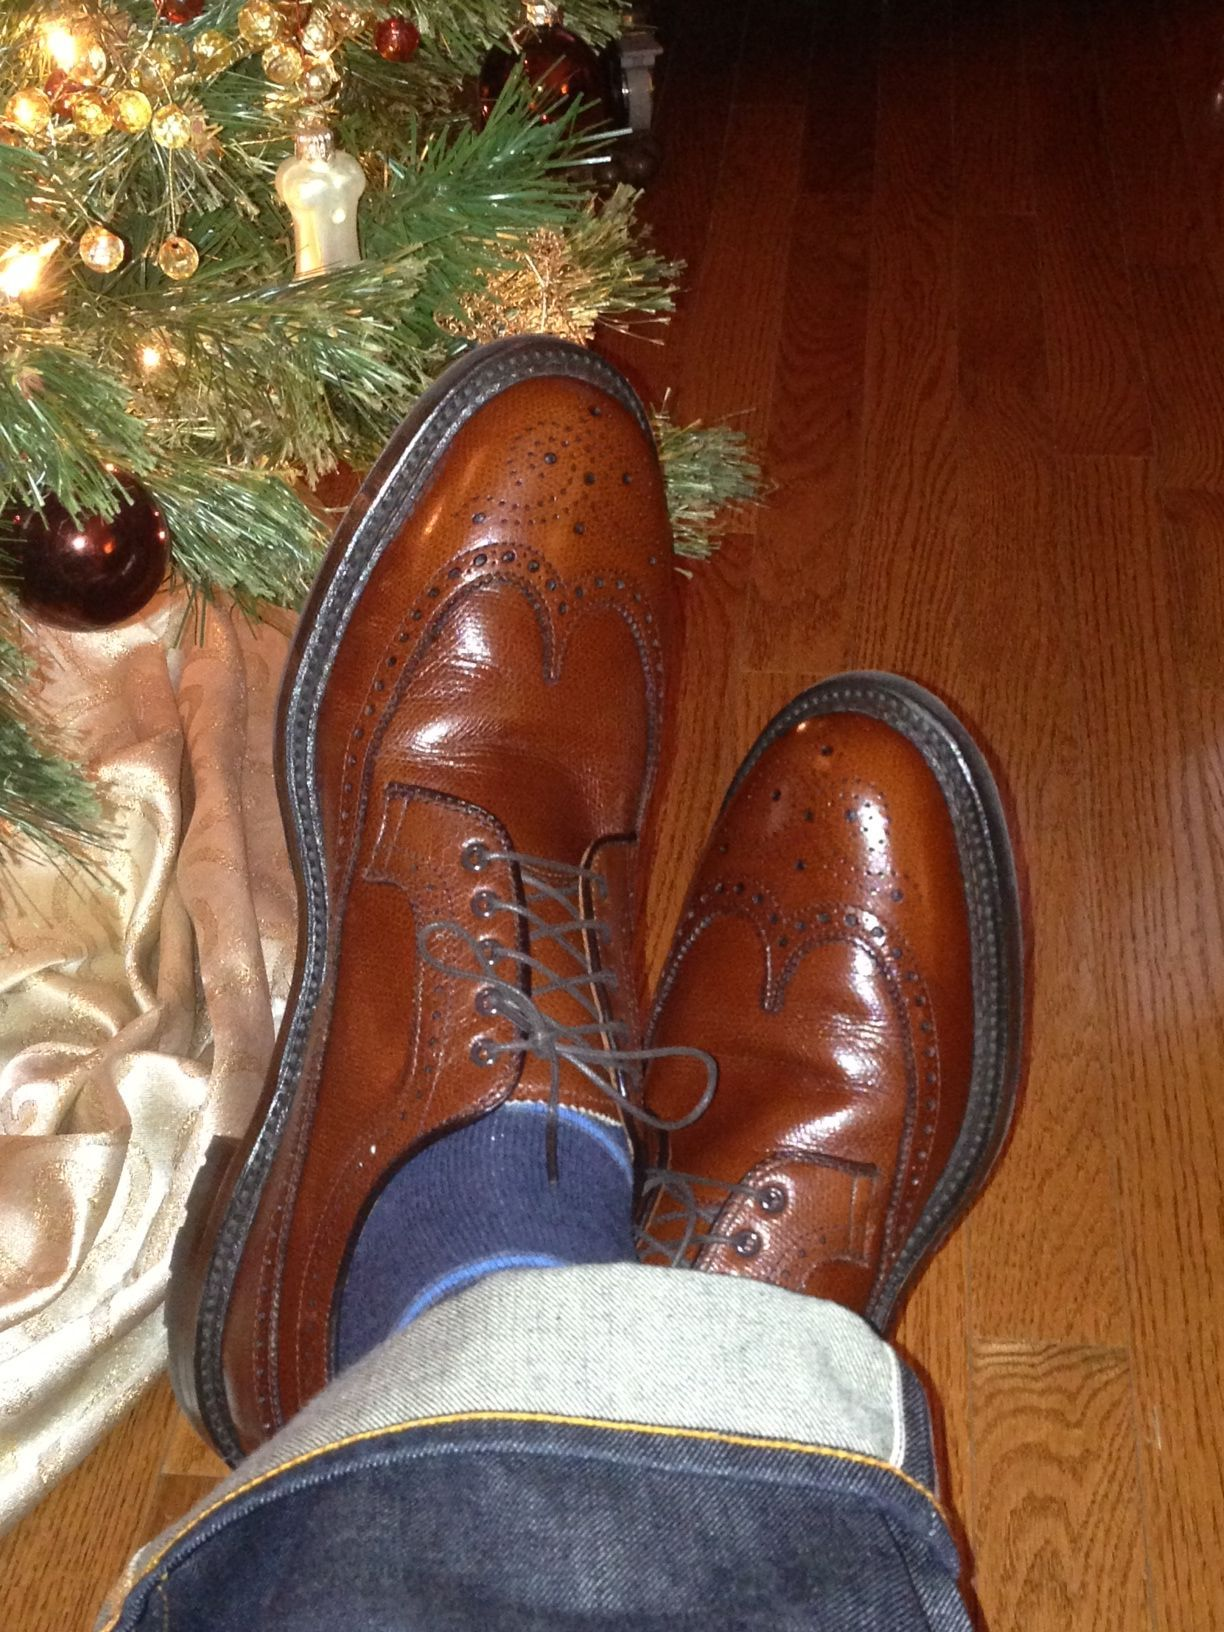 Alden LWB, Barrie Last, Commando Sole. From Alden of DC.